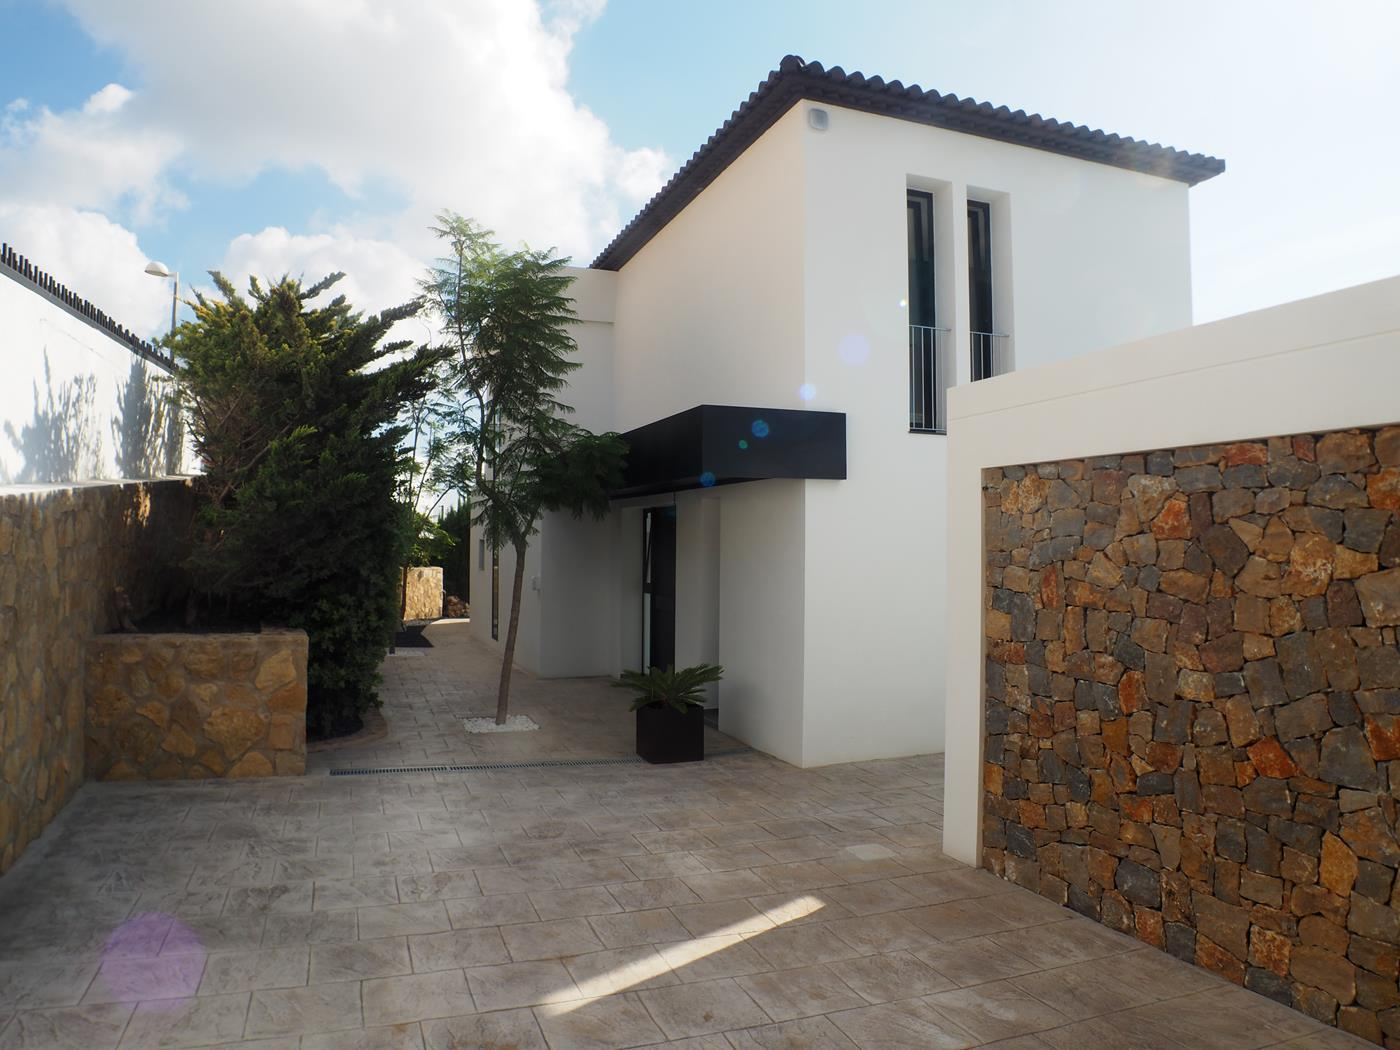 Photogallery - 37 - Exceptional homes in the Costa Blanca. Unparalleled Service. Exceptional properties in the Costa Blanca